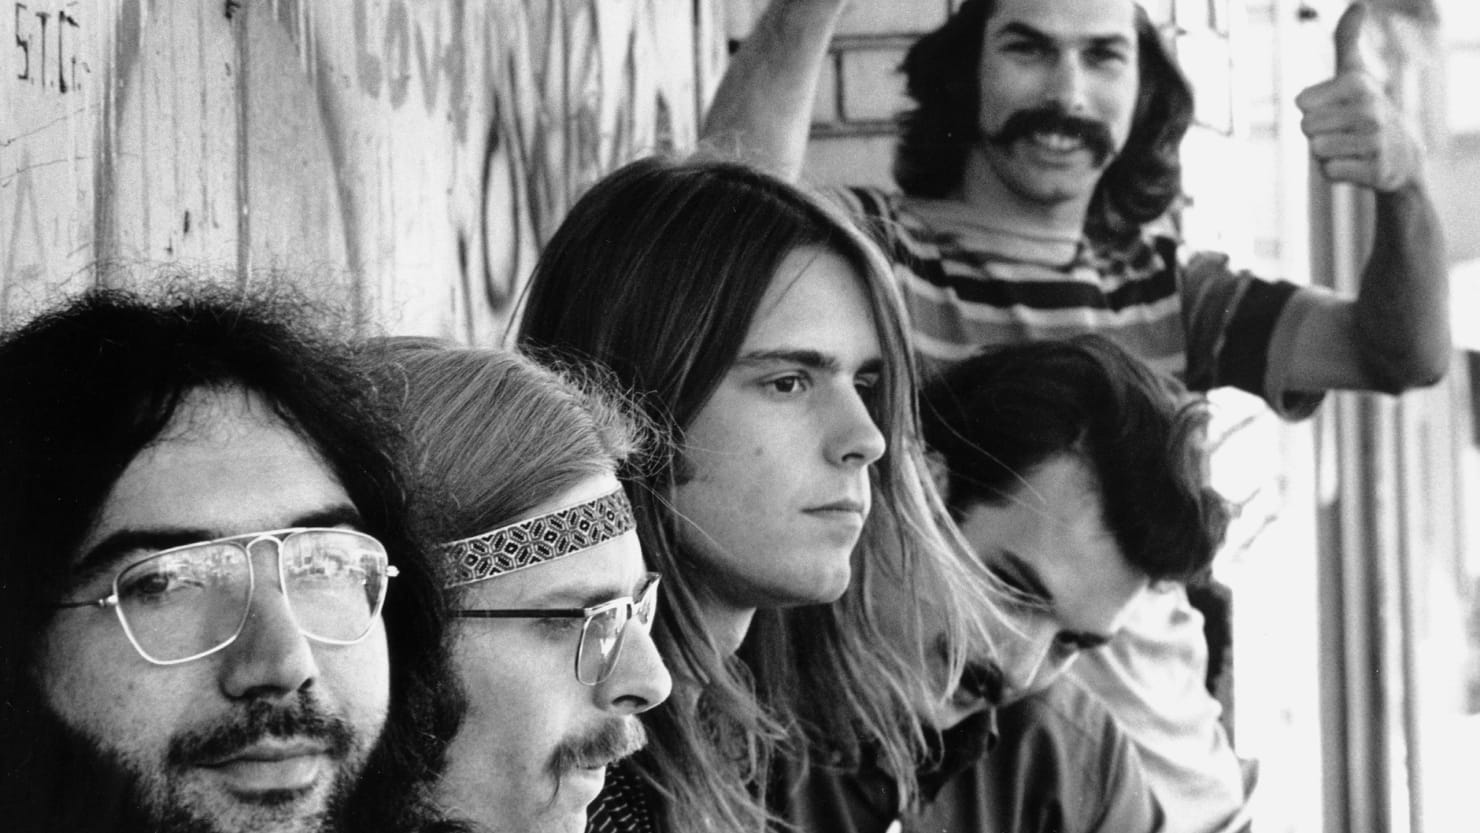 Grateful Dead Documentary 'Long Strange Trip' Will Make You a Deadhead